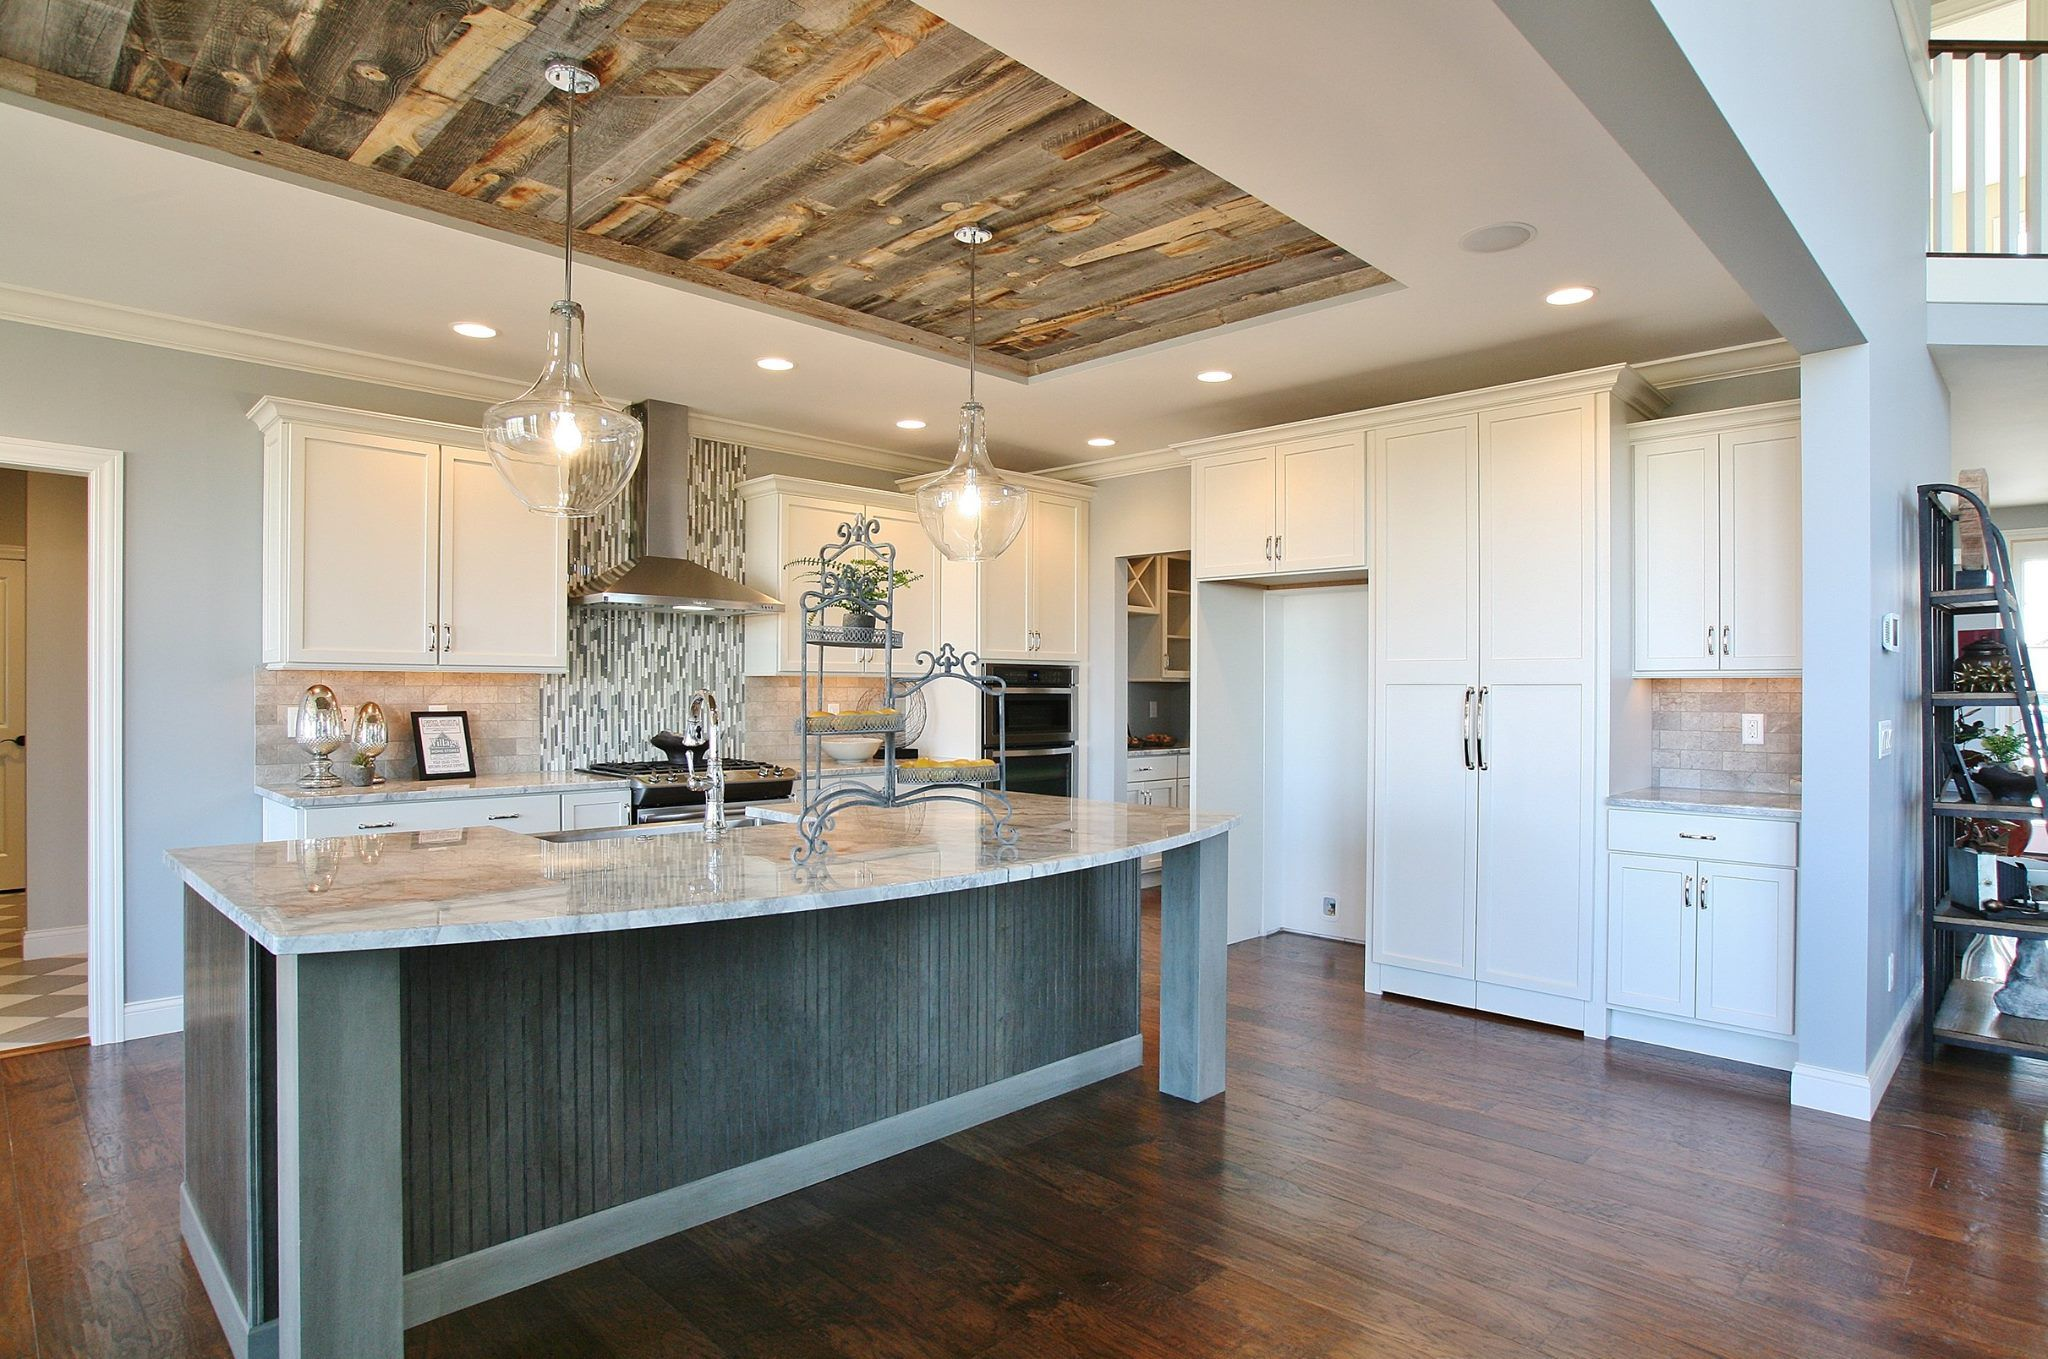 Small Kitchen Ceiling Design Mesmerizing Walk Around Island Add Small Cupboard To R Tiny House 3432 2